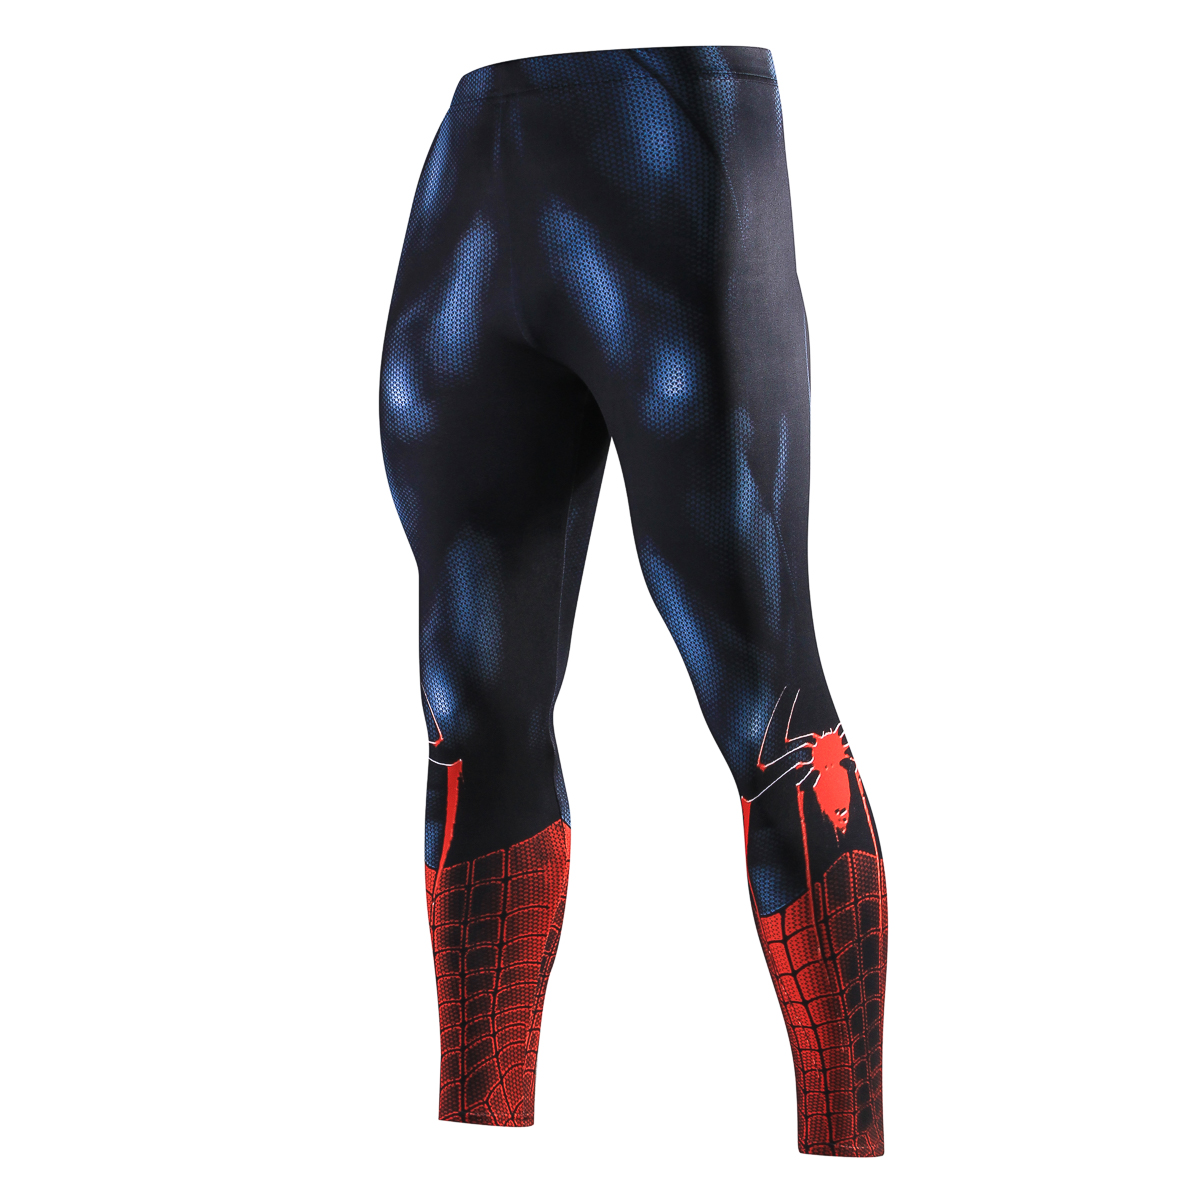 Männer dünne Kompression Hosen Superman Spiderman Iron Man Batman Leggings Jogginghose 3D Fitness Bodybuilding elastische Hose